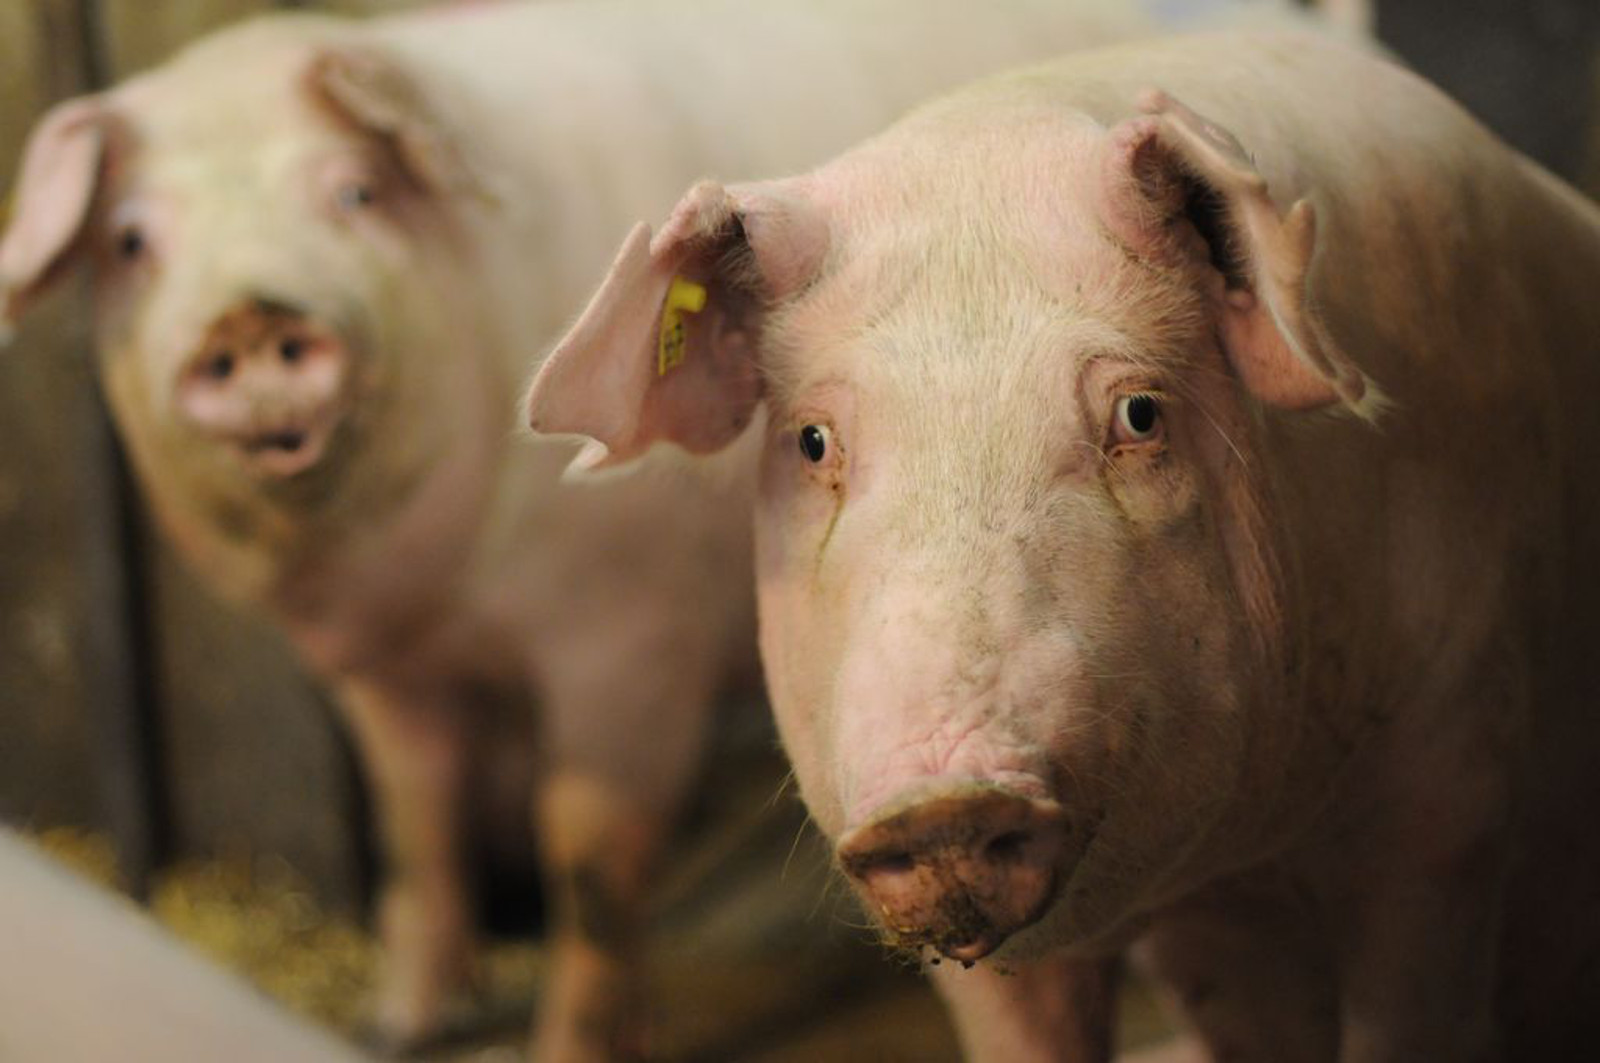 5 Powerful Videos on Factory Farming without the Gore